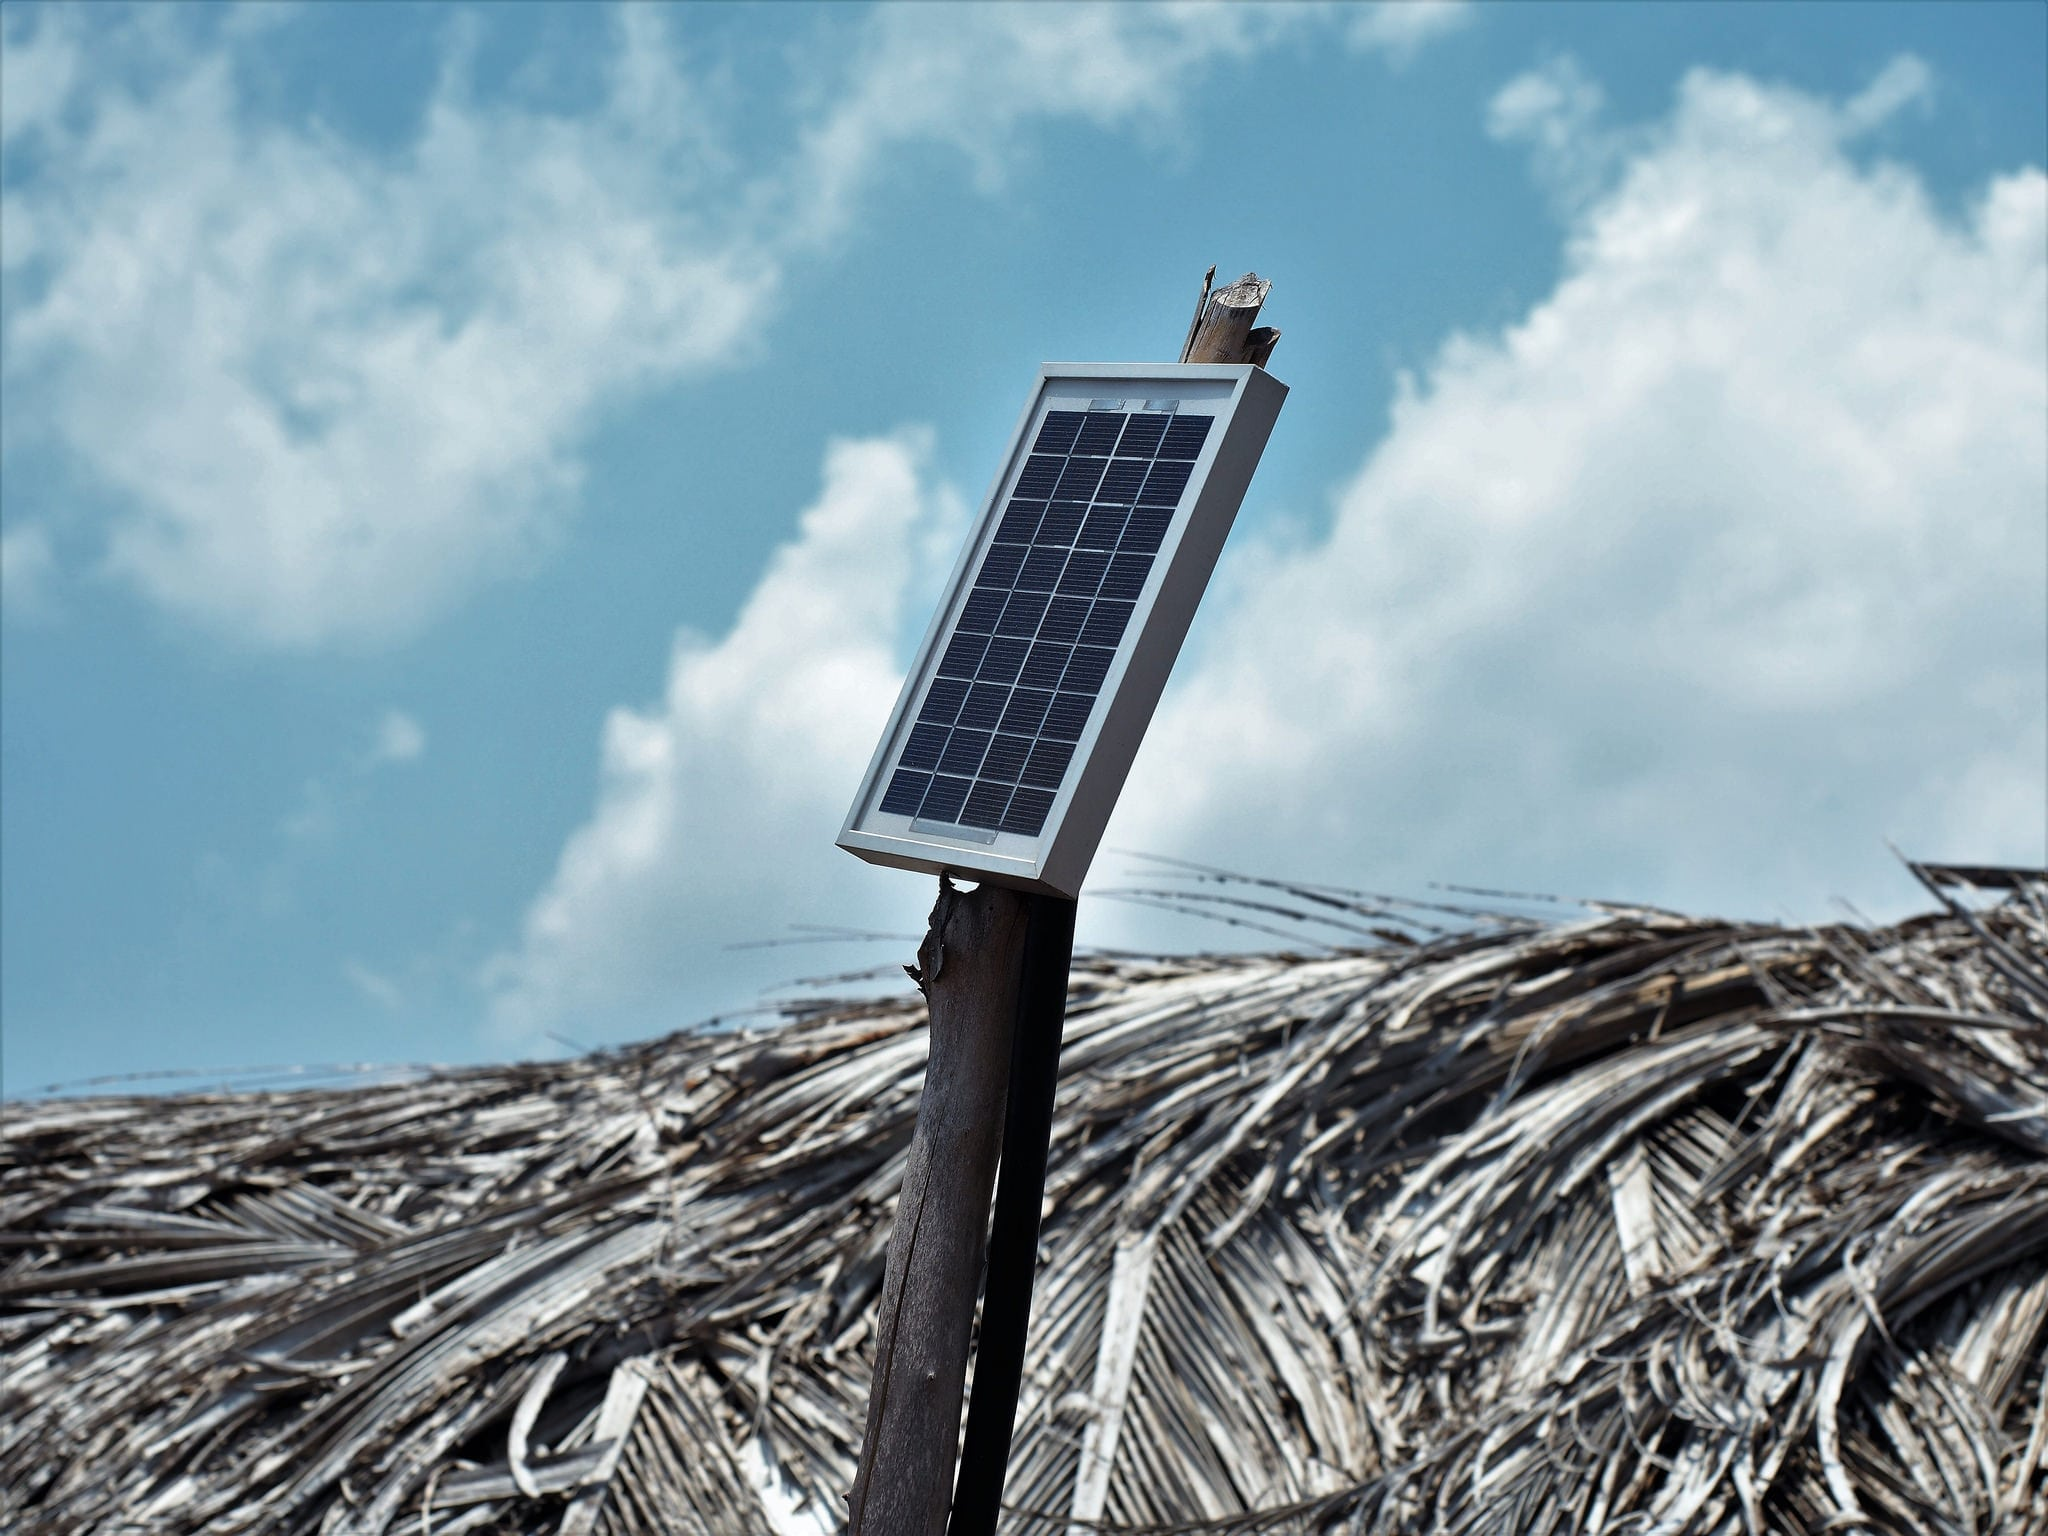 Off Grid Energy Solutions Archives Engineering For Change Solar Panel With Corrugated Thin Film Cells On Wiring Panels In